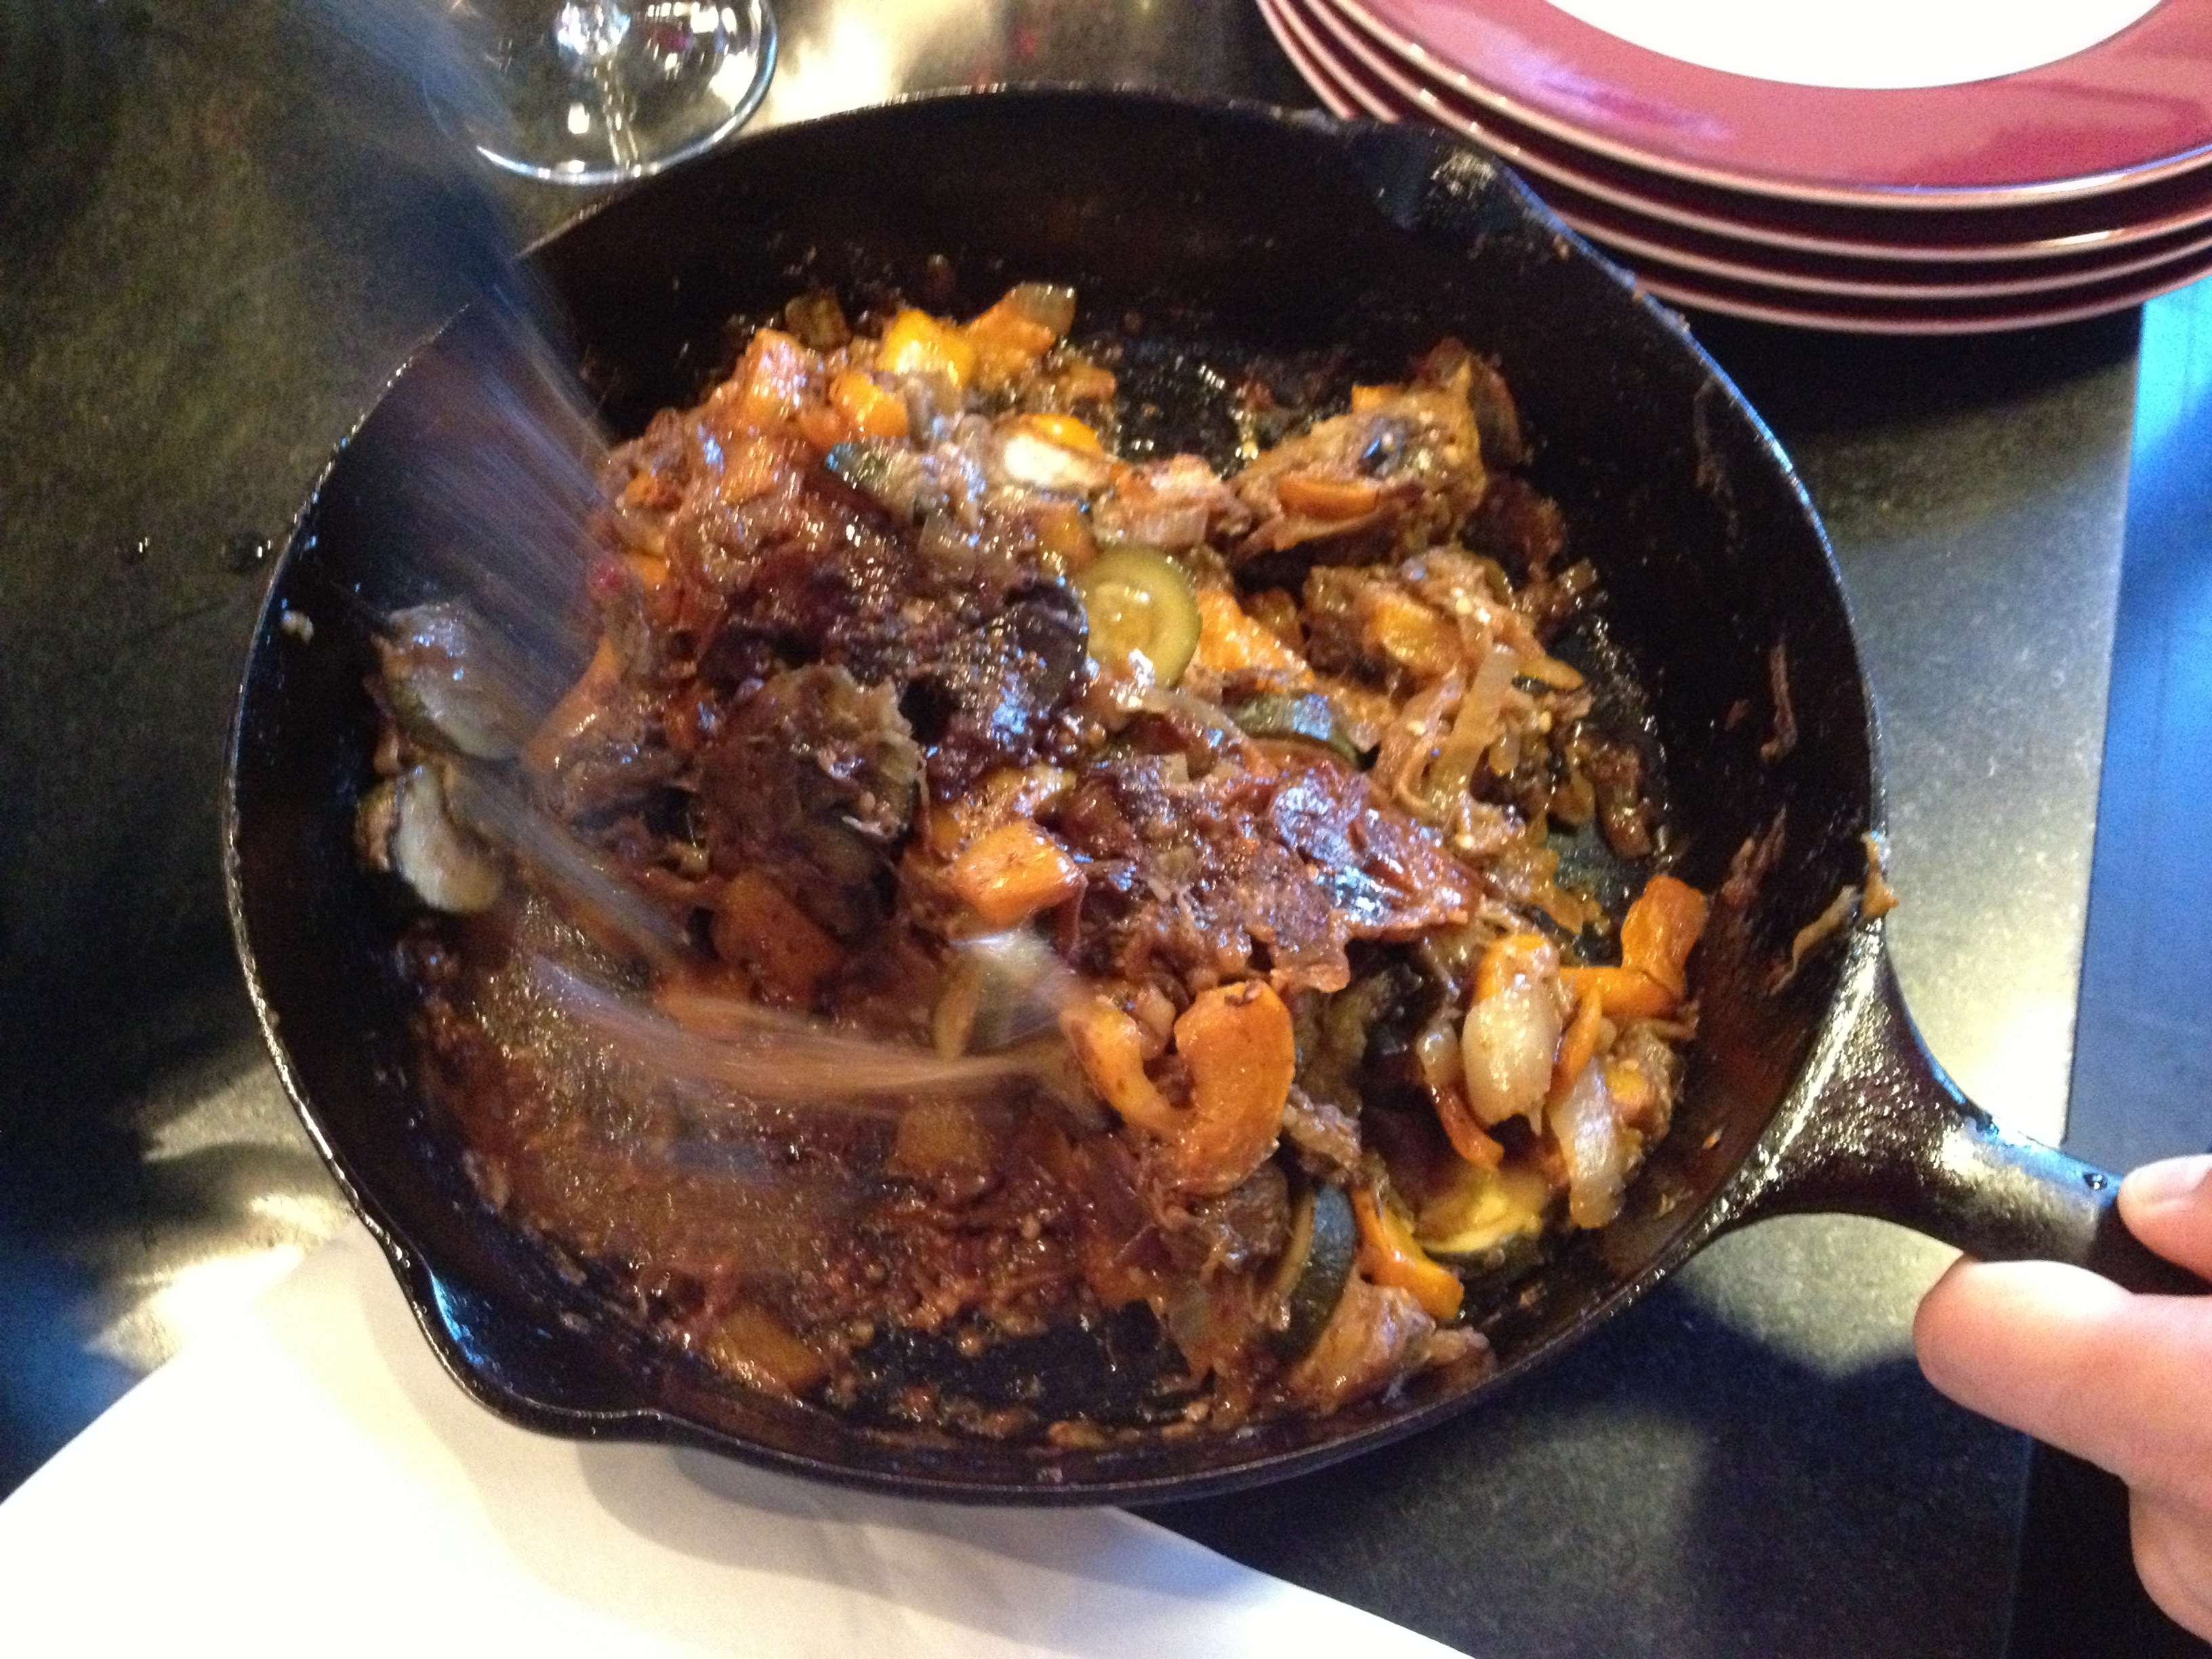 Skillet ratatouille being made in a black cast iron skillet, recipe from Food and Wine.